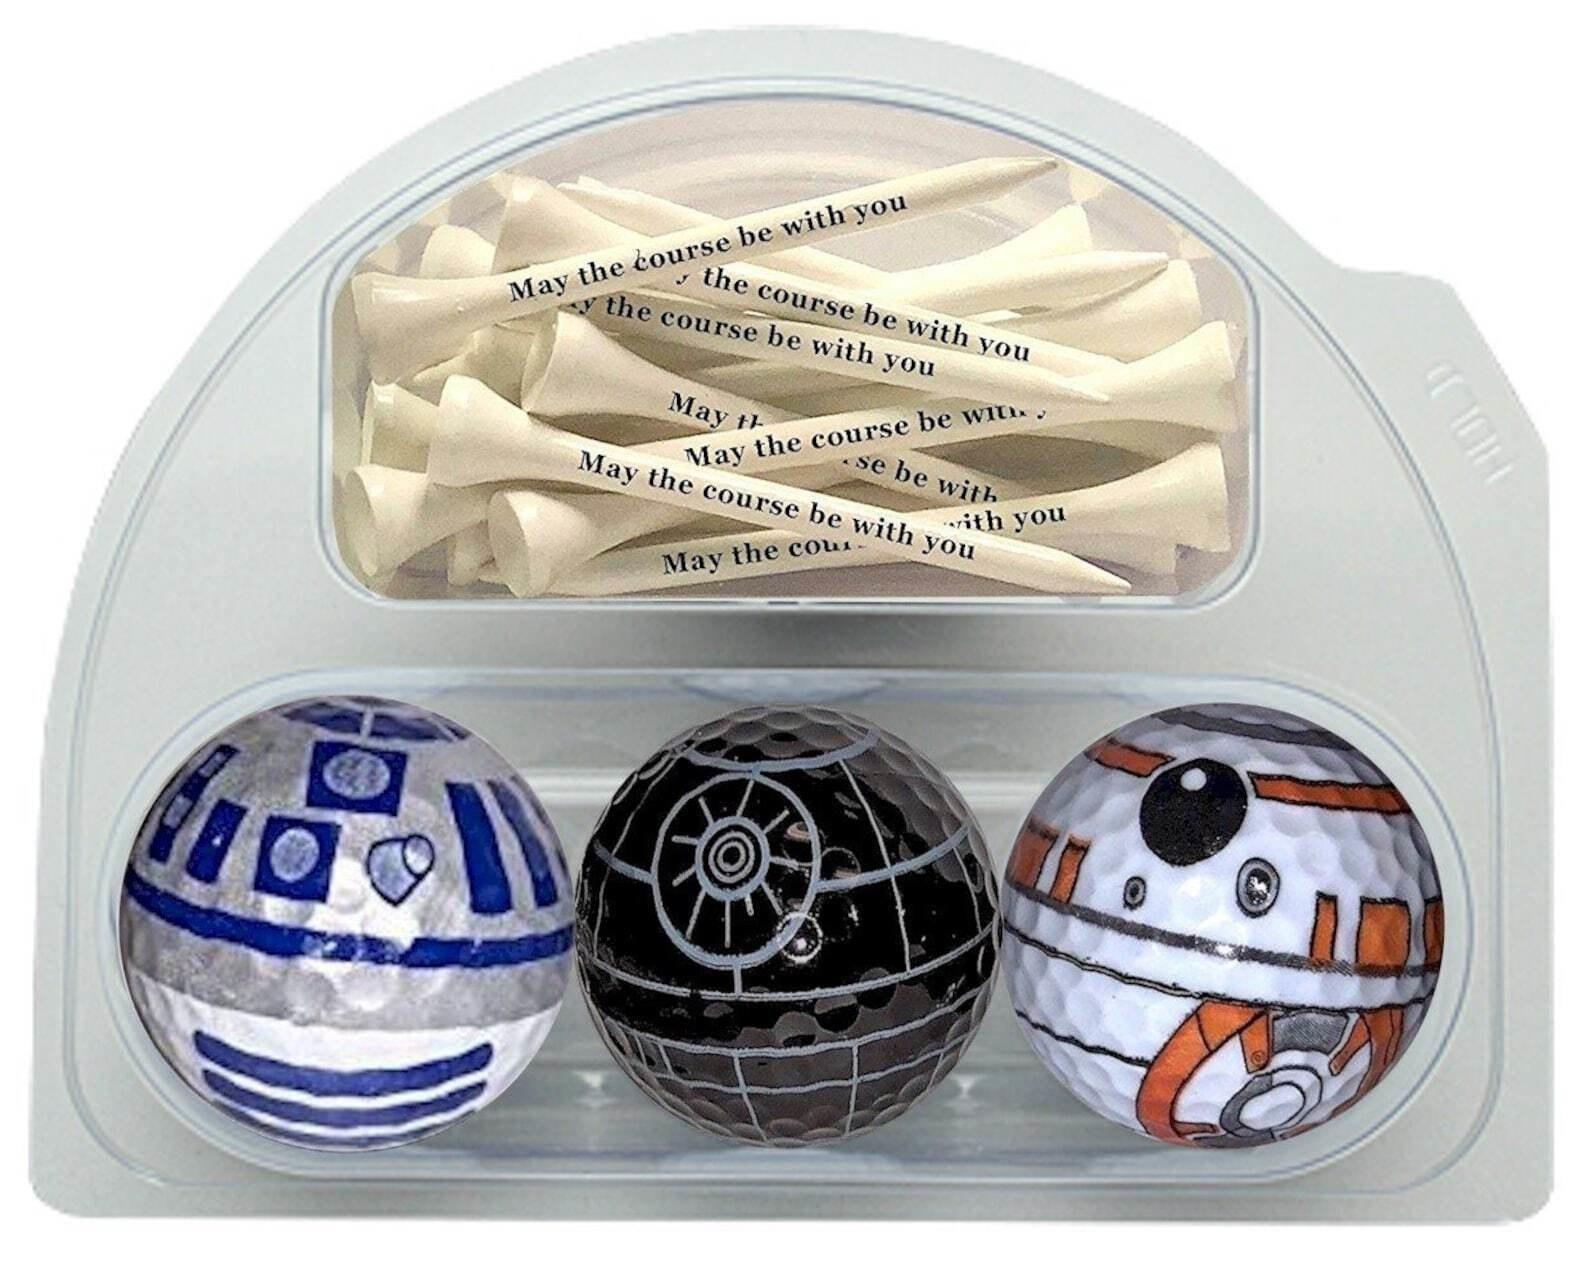 one death star, r2d2, and bb8 gold ball with several tees that say may the course be with you